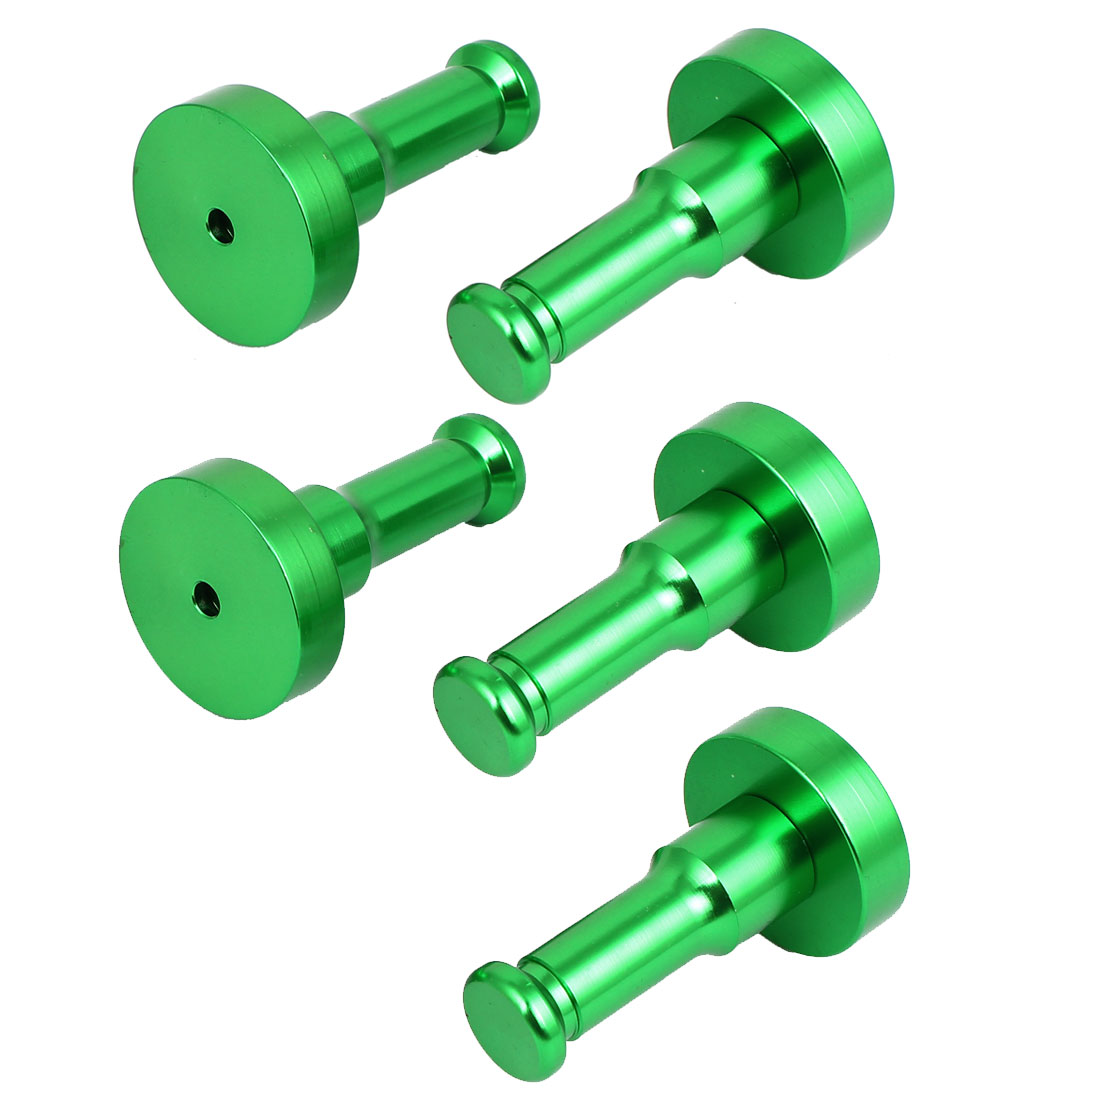 Bathroom Bedroom Clothes Aluminium Round Robe Hook Decorative Wall Hanger Green 5pcs